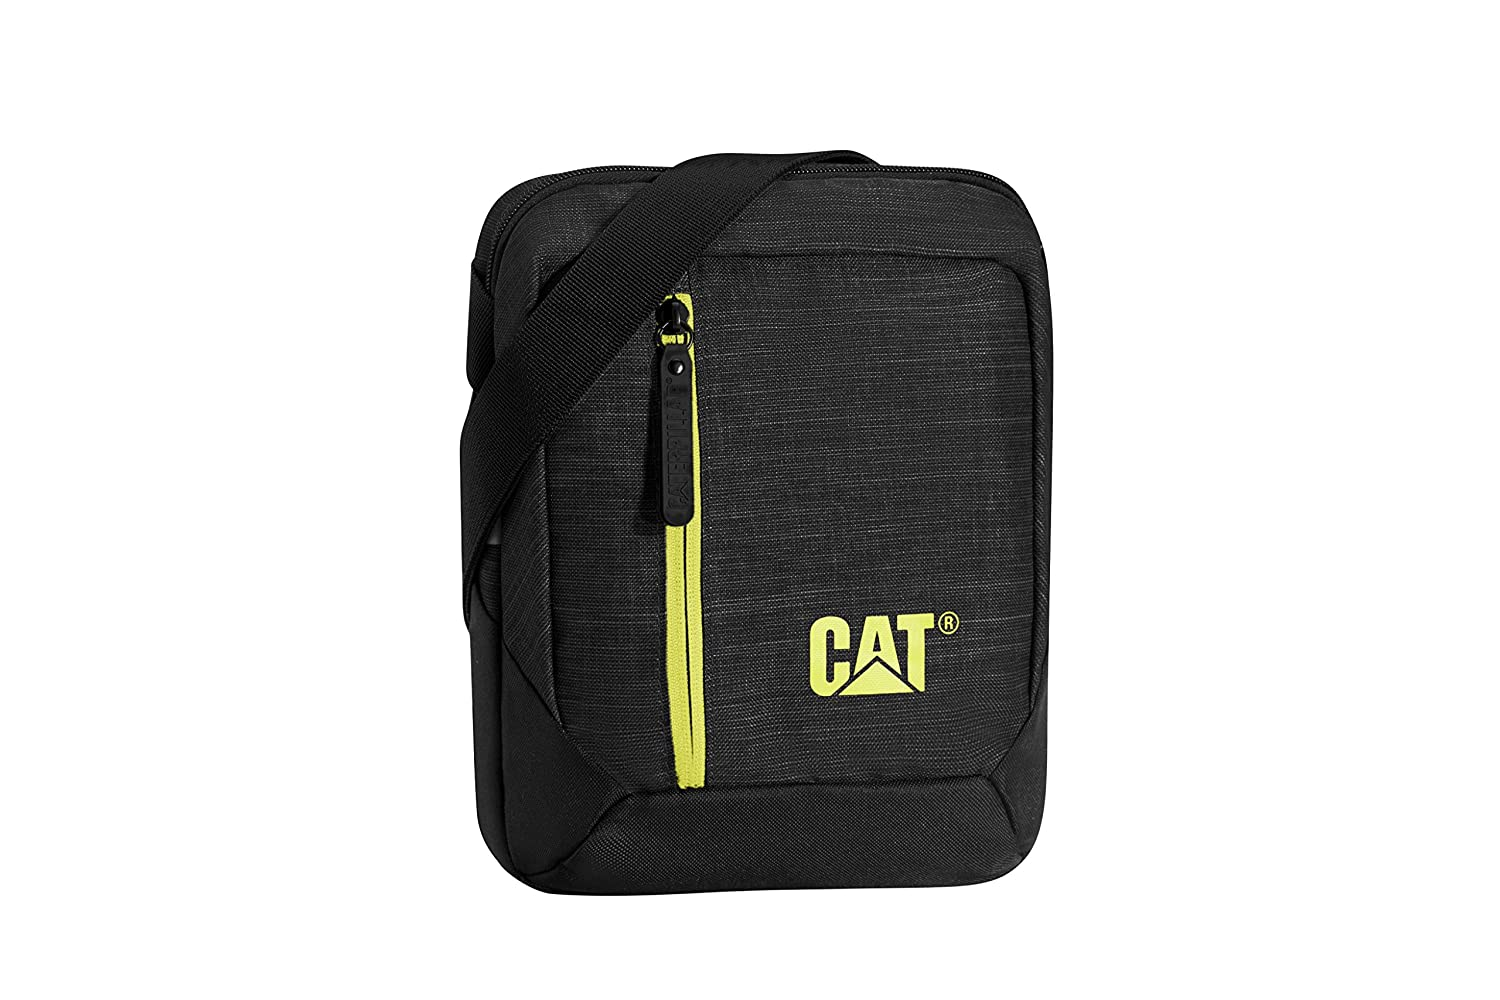 Caterpillar 83373– 340  Cat Tablet Project Sac de Sport, SW, Noir, L/B/H : 21/6/27  –   Volume : 2  L L/B/H  : 21/6/27 - Volume  : 2 L 83373-340